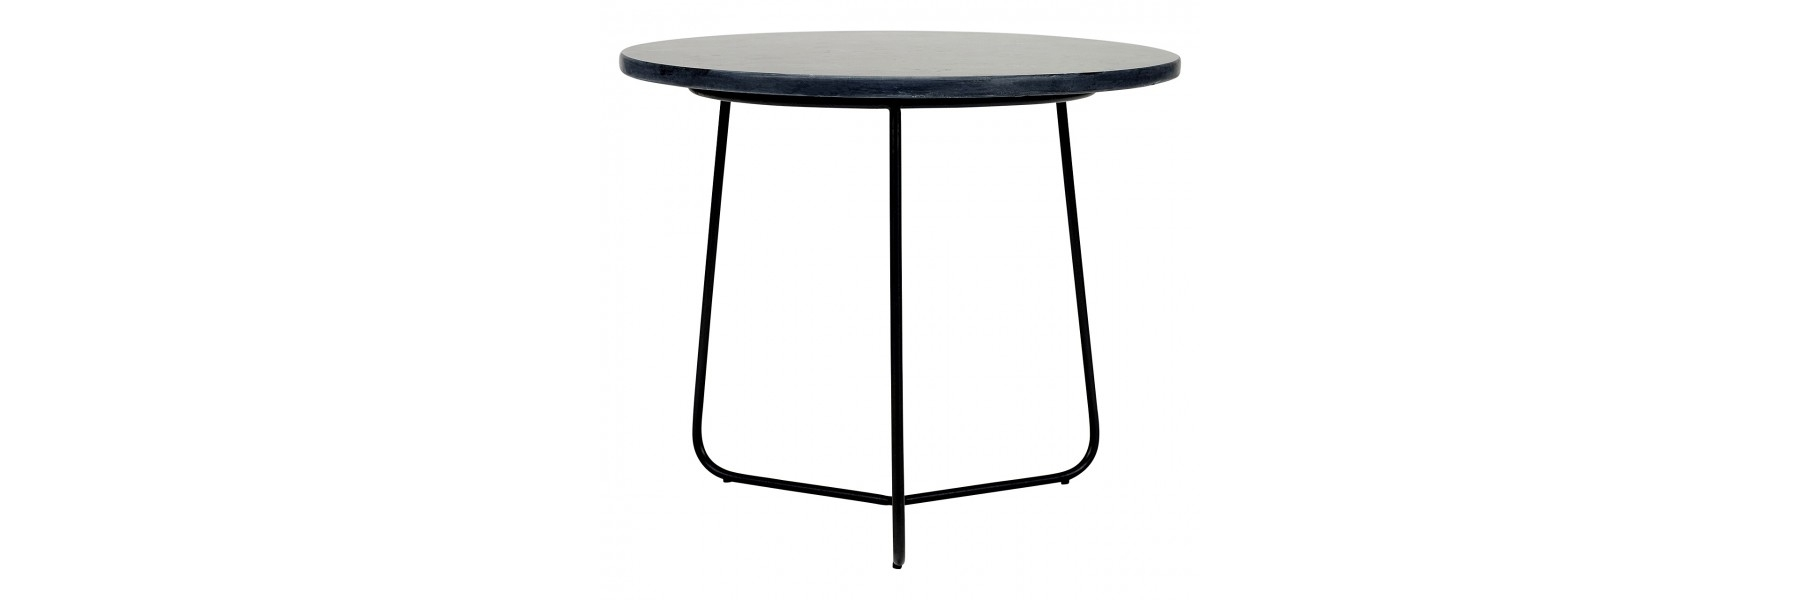 Marble Coffee Table Black in Parker Oval Marble Coffee Tables (Image 11 of 30)